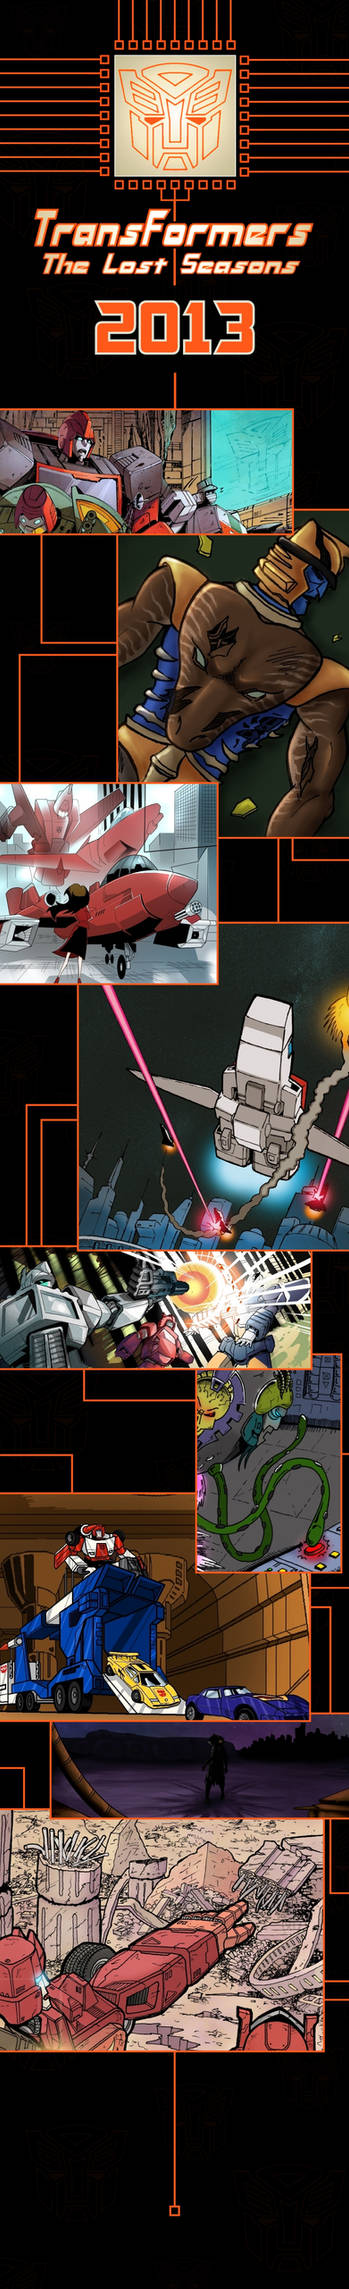 Coming to Transformers The Lost Seasons in 2013